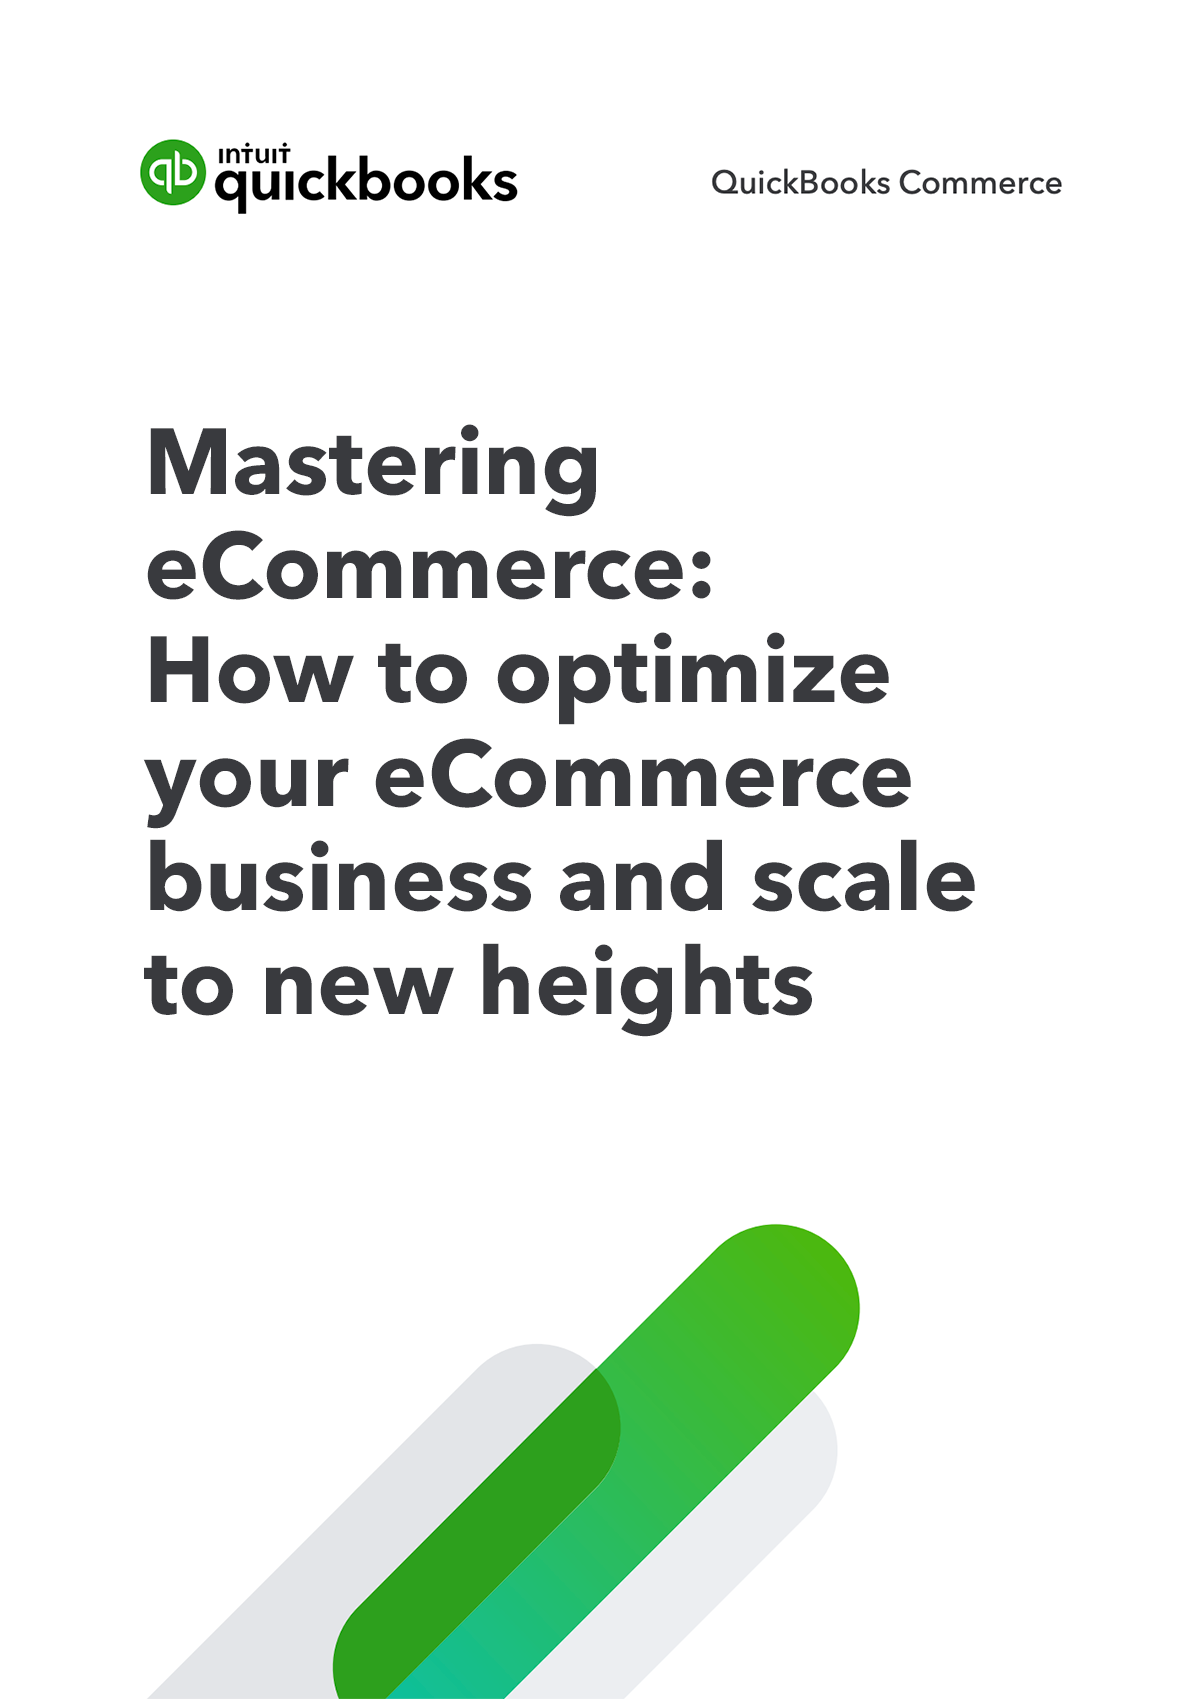 Mastering eCommerce: How to optimize your eCommerce business and scale to new heights